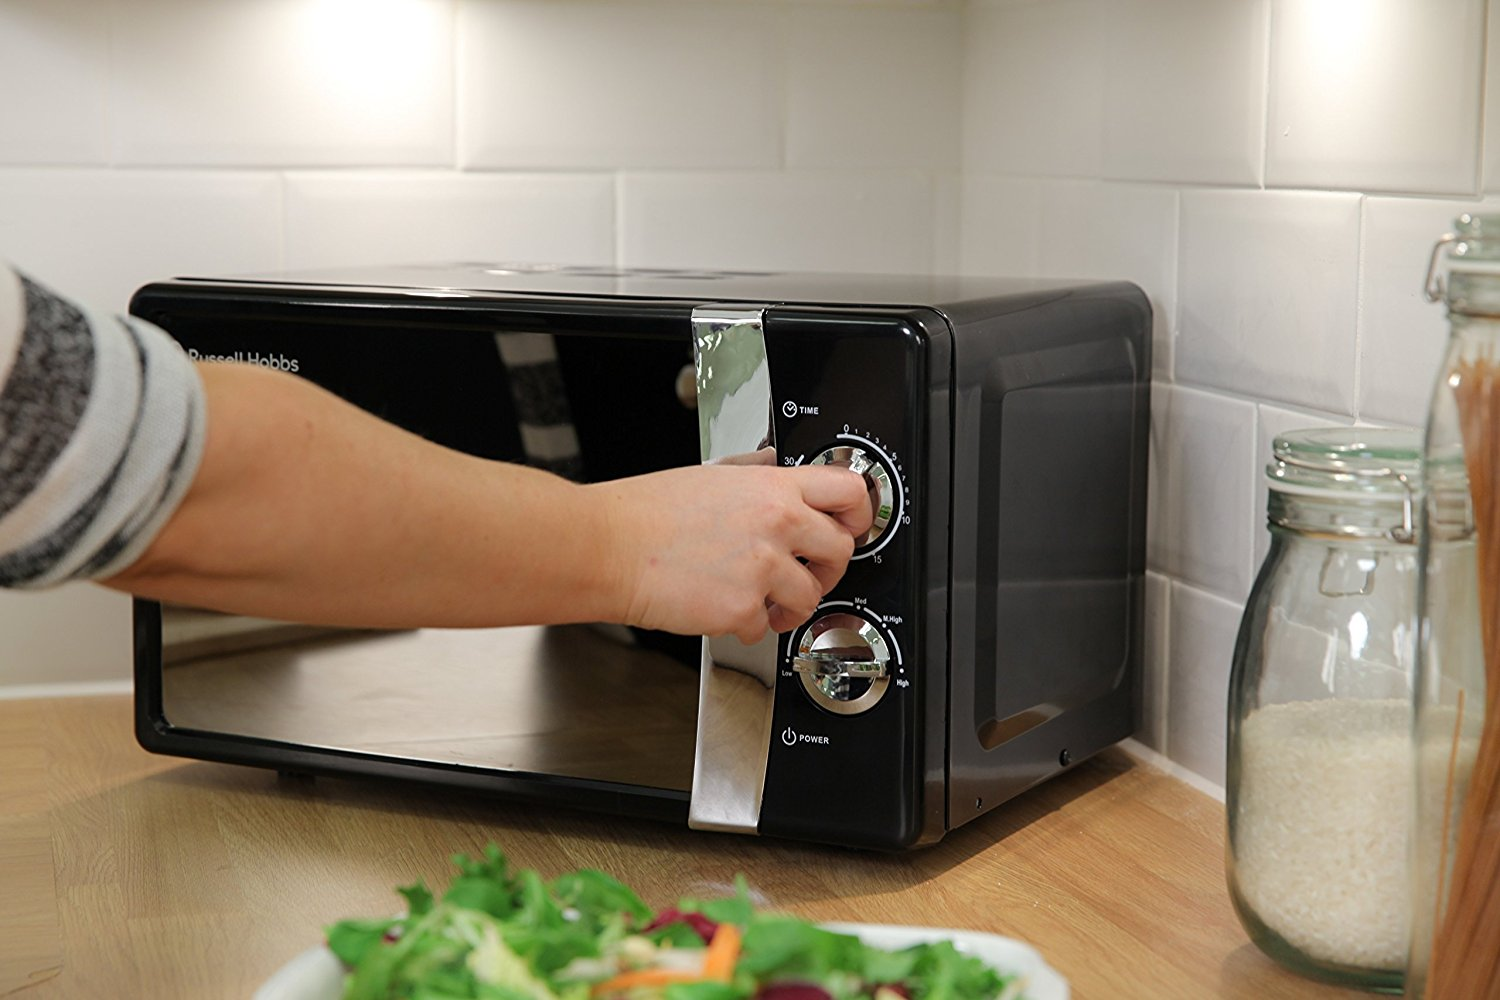 The RHMM701B is a manual microwave